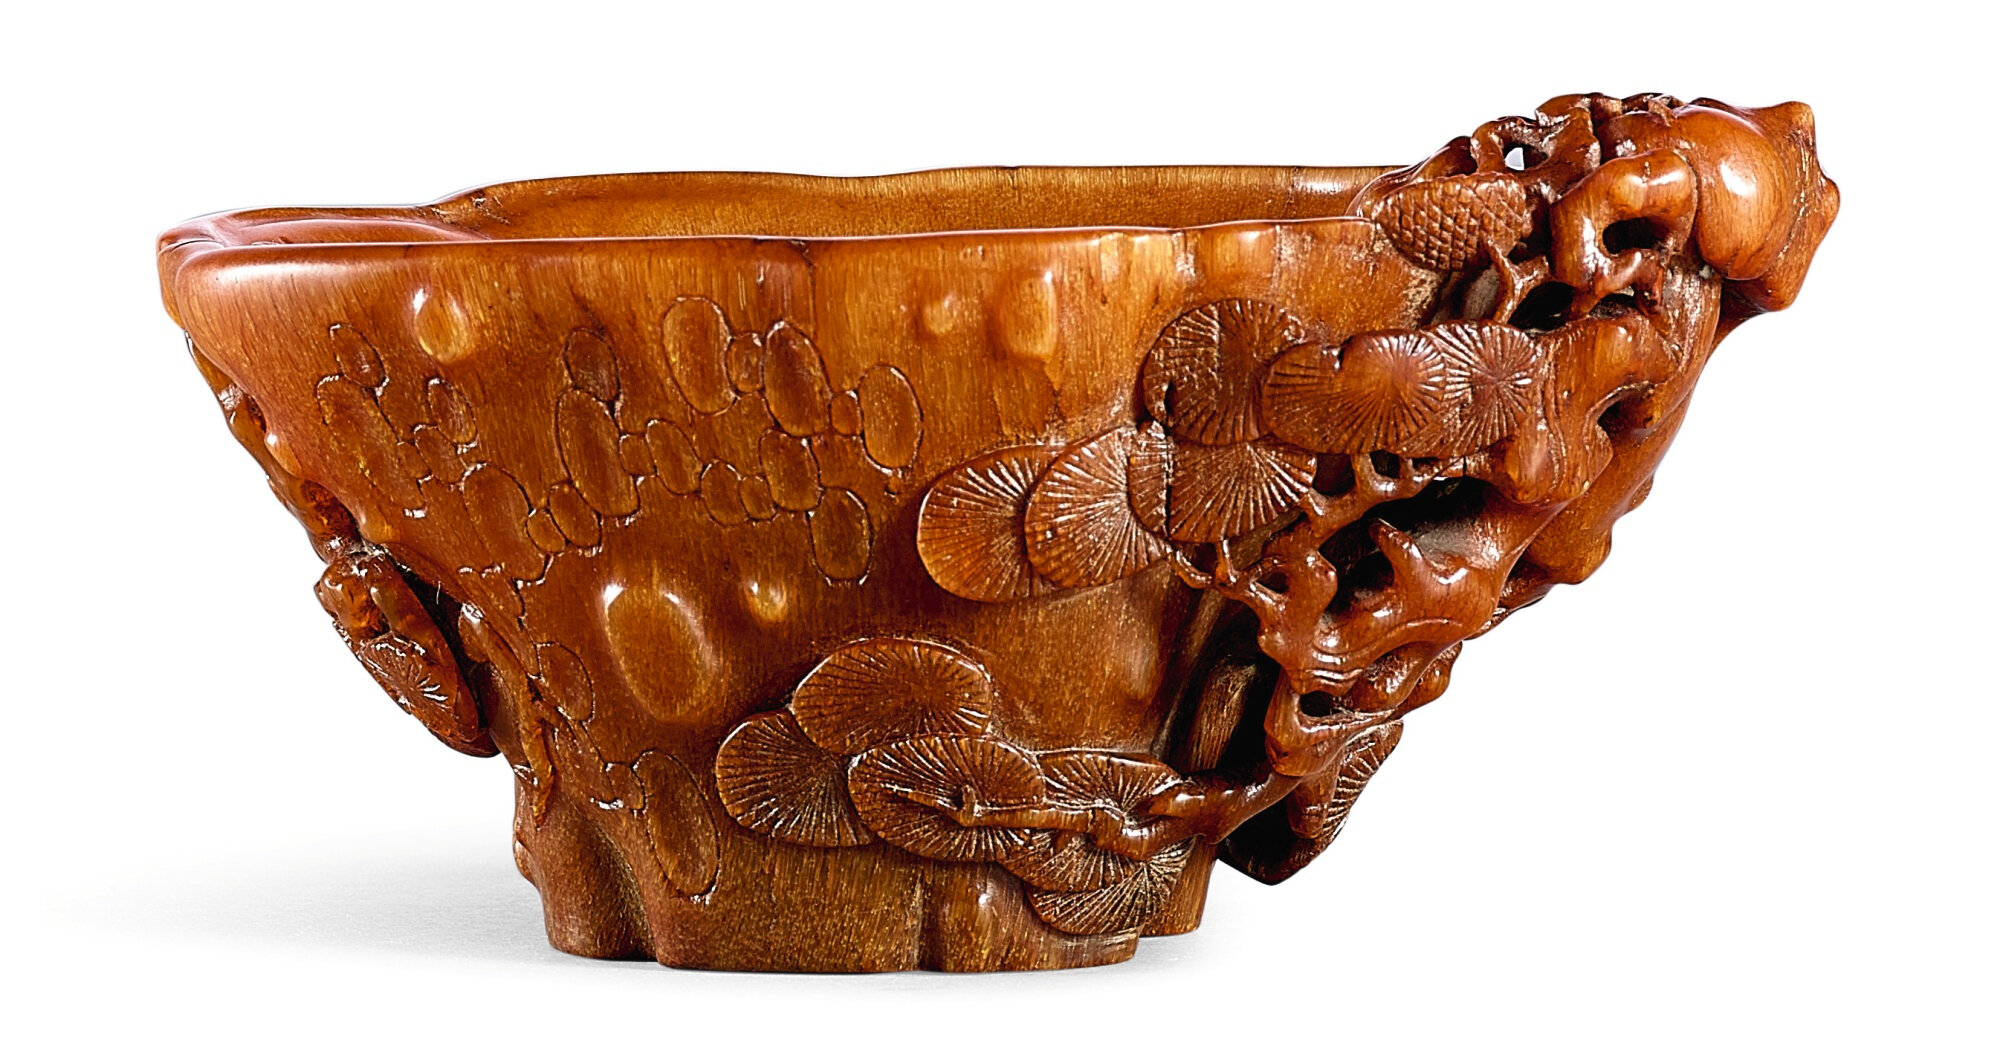 A small rhinoceros horn 'Pine' libation cup, 17th century